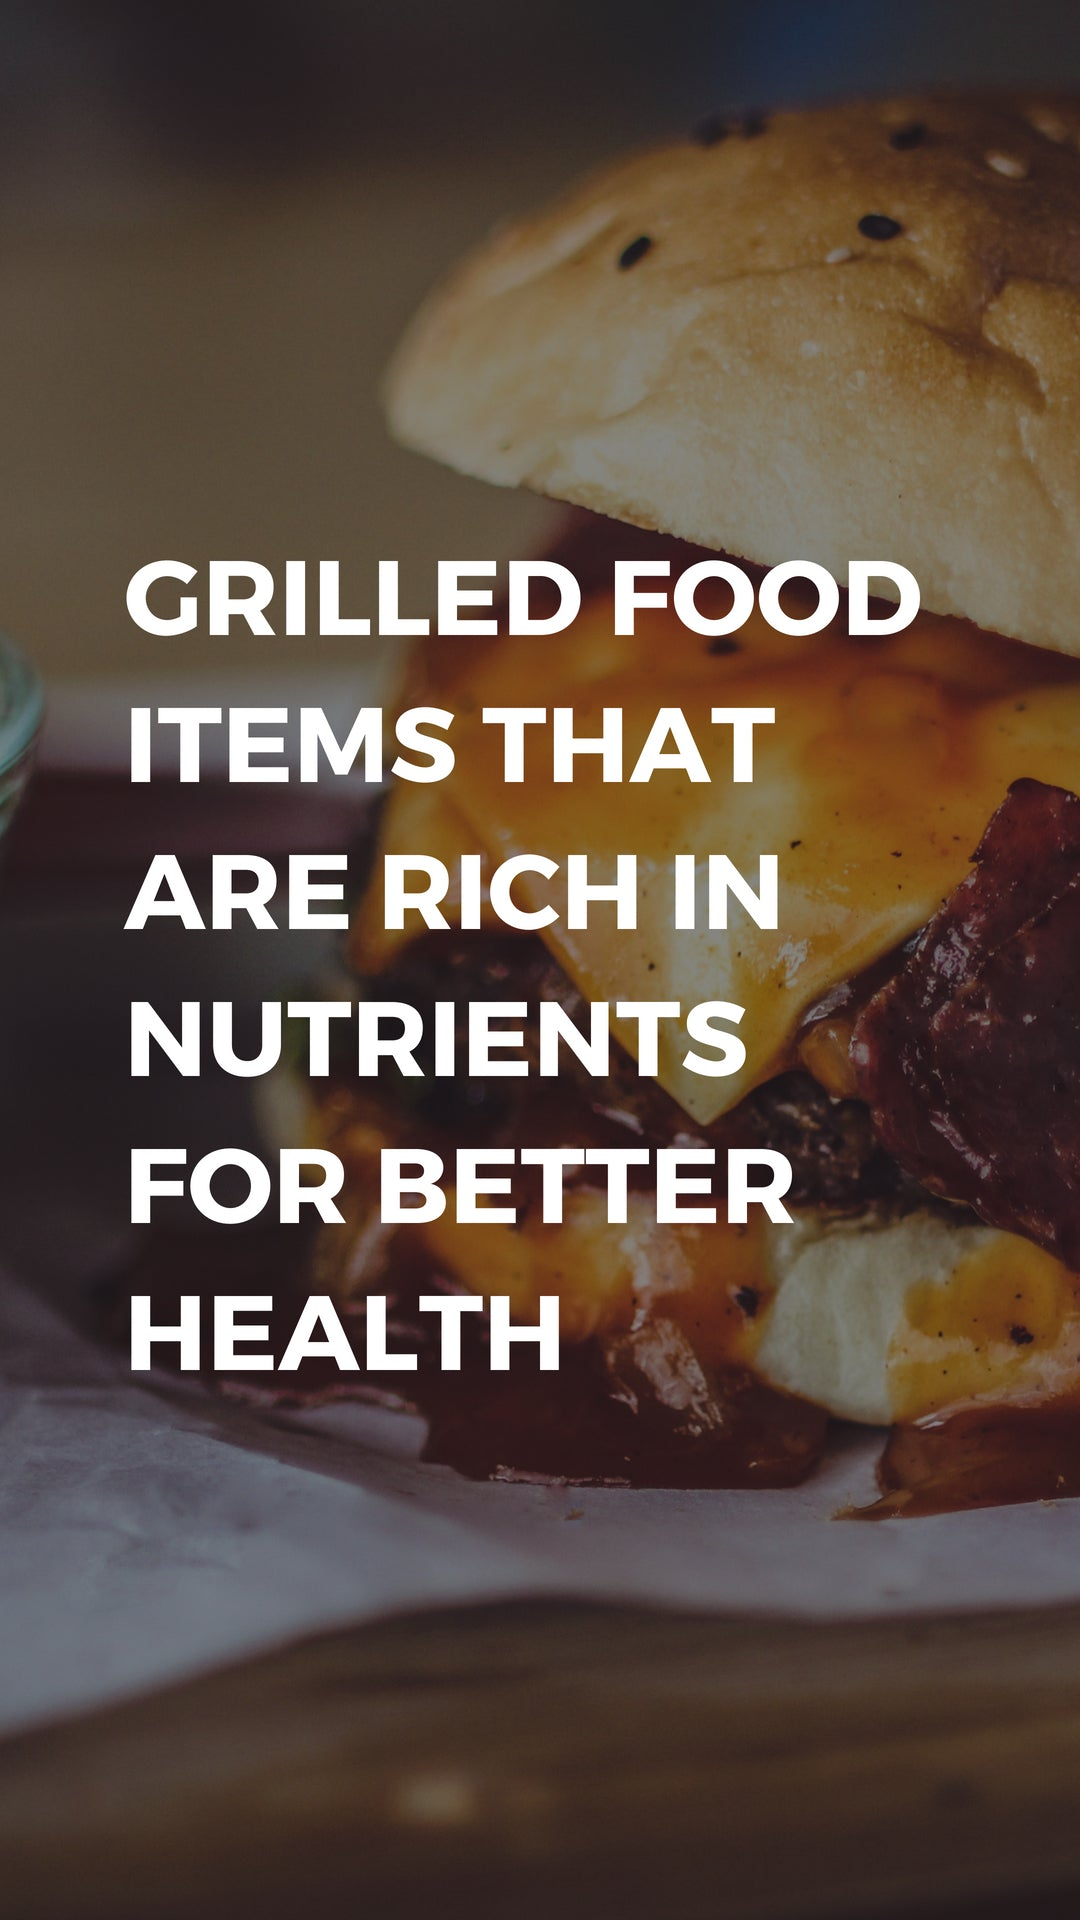 Grilled Food Items That Are Rich In Nutrients For Better Health